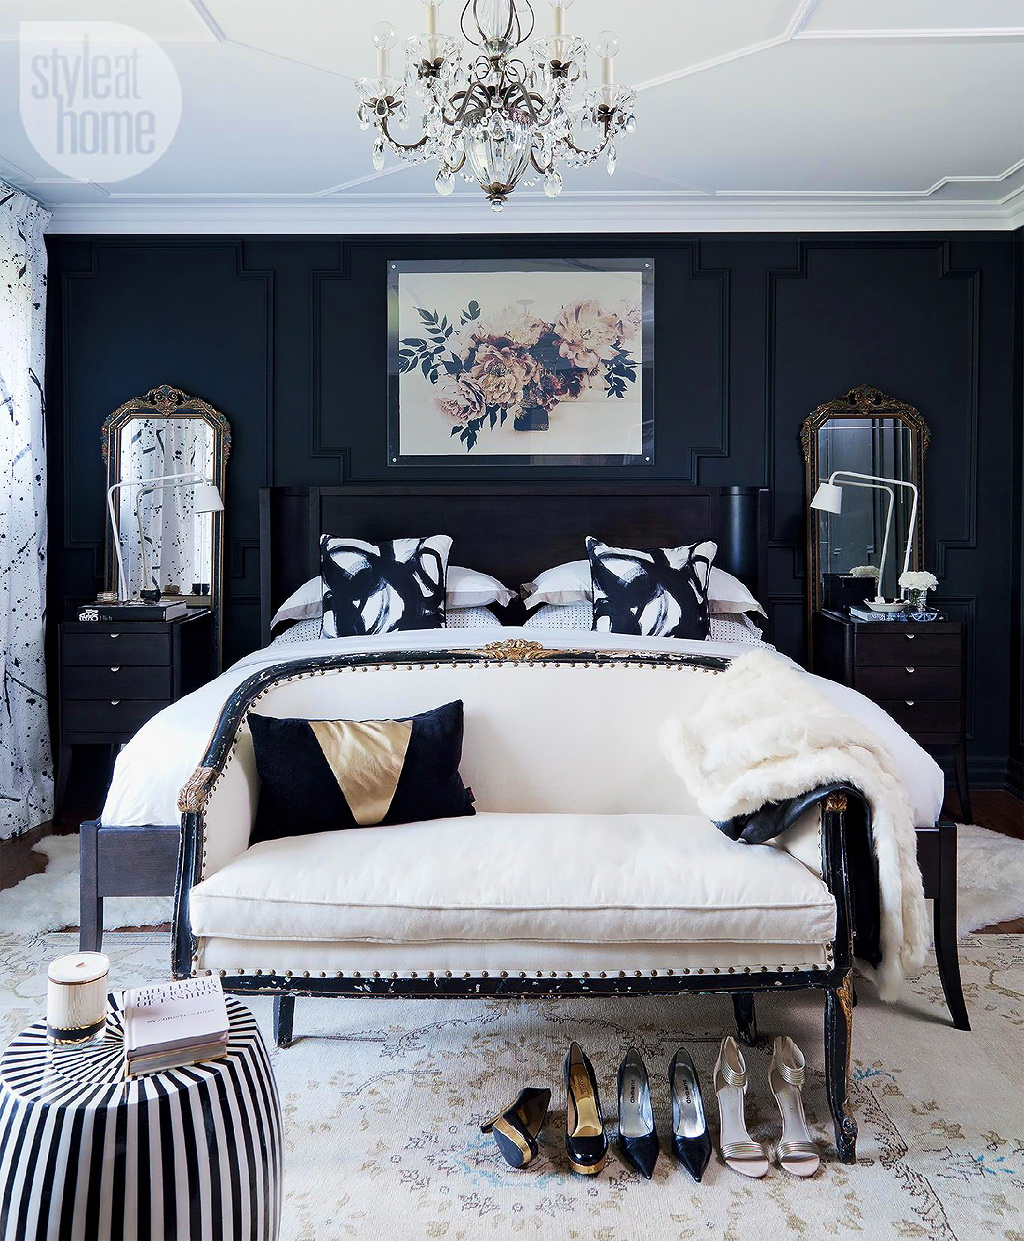 Style-At-Home-Bedroom-decor-6